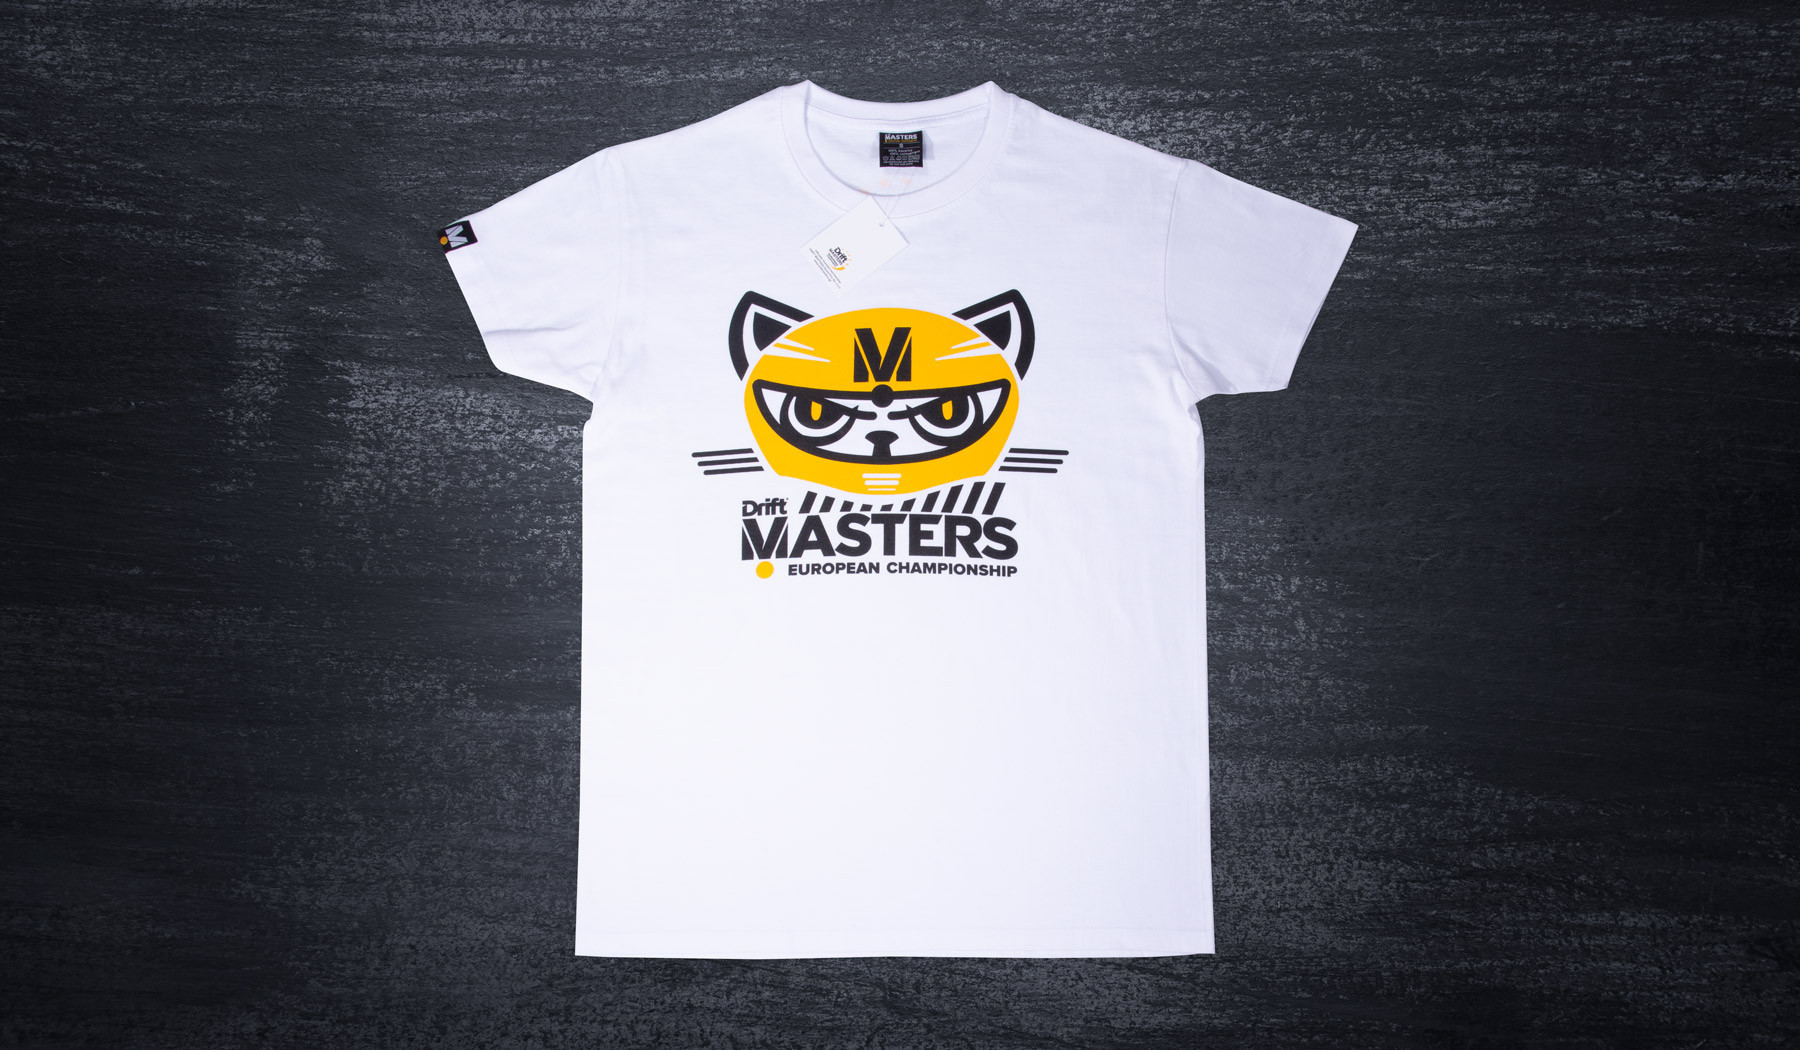 Drift Masters cat T-shirt white